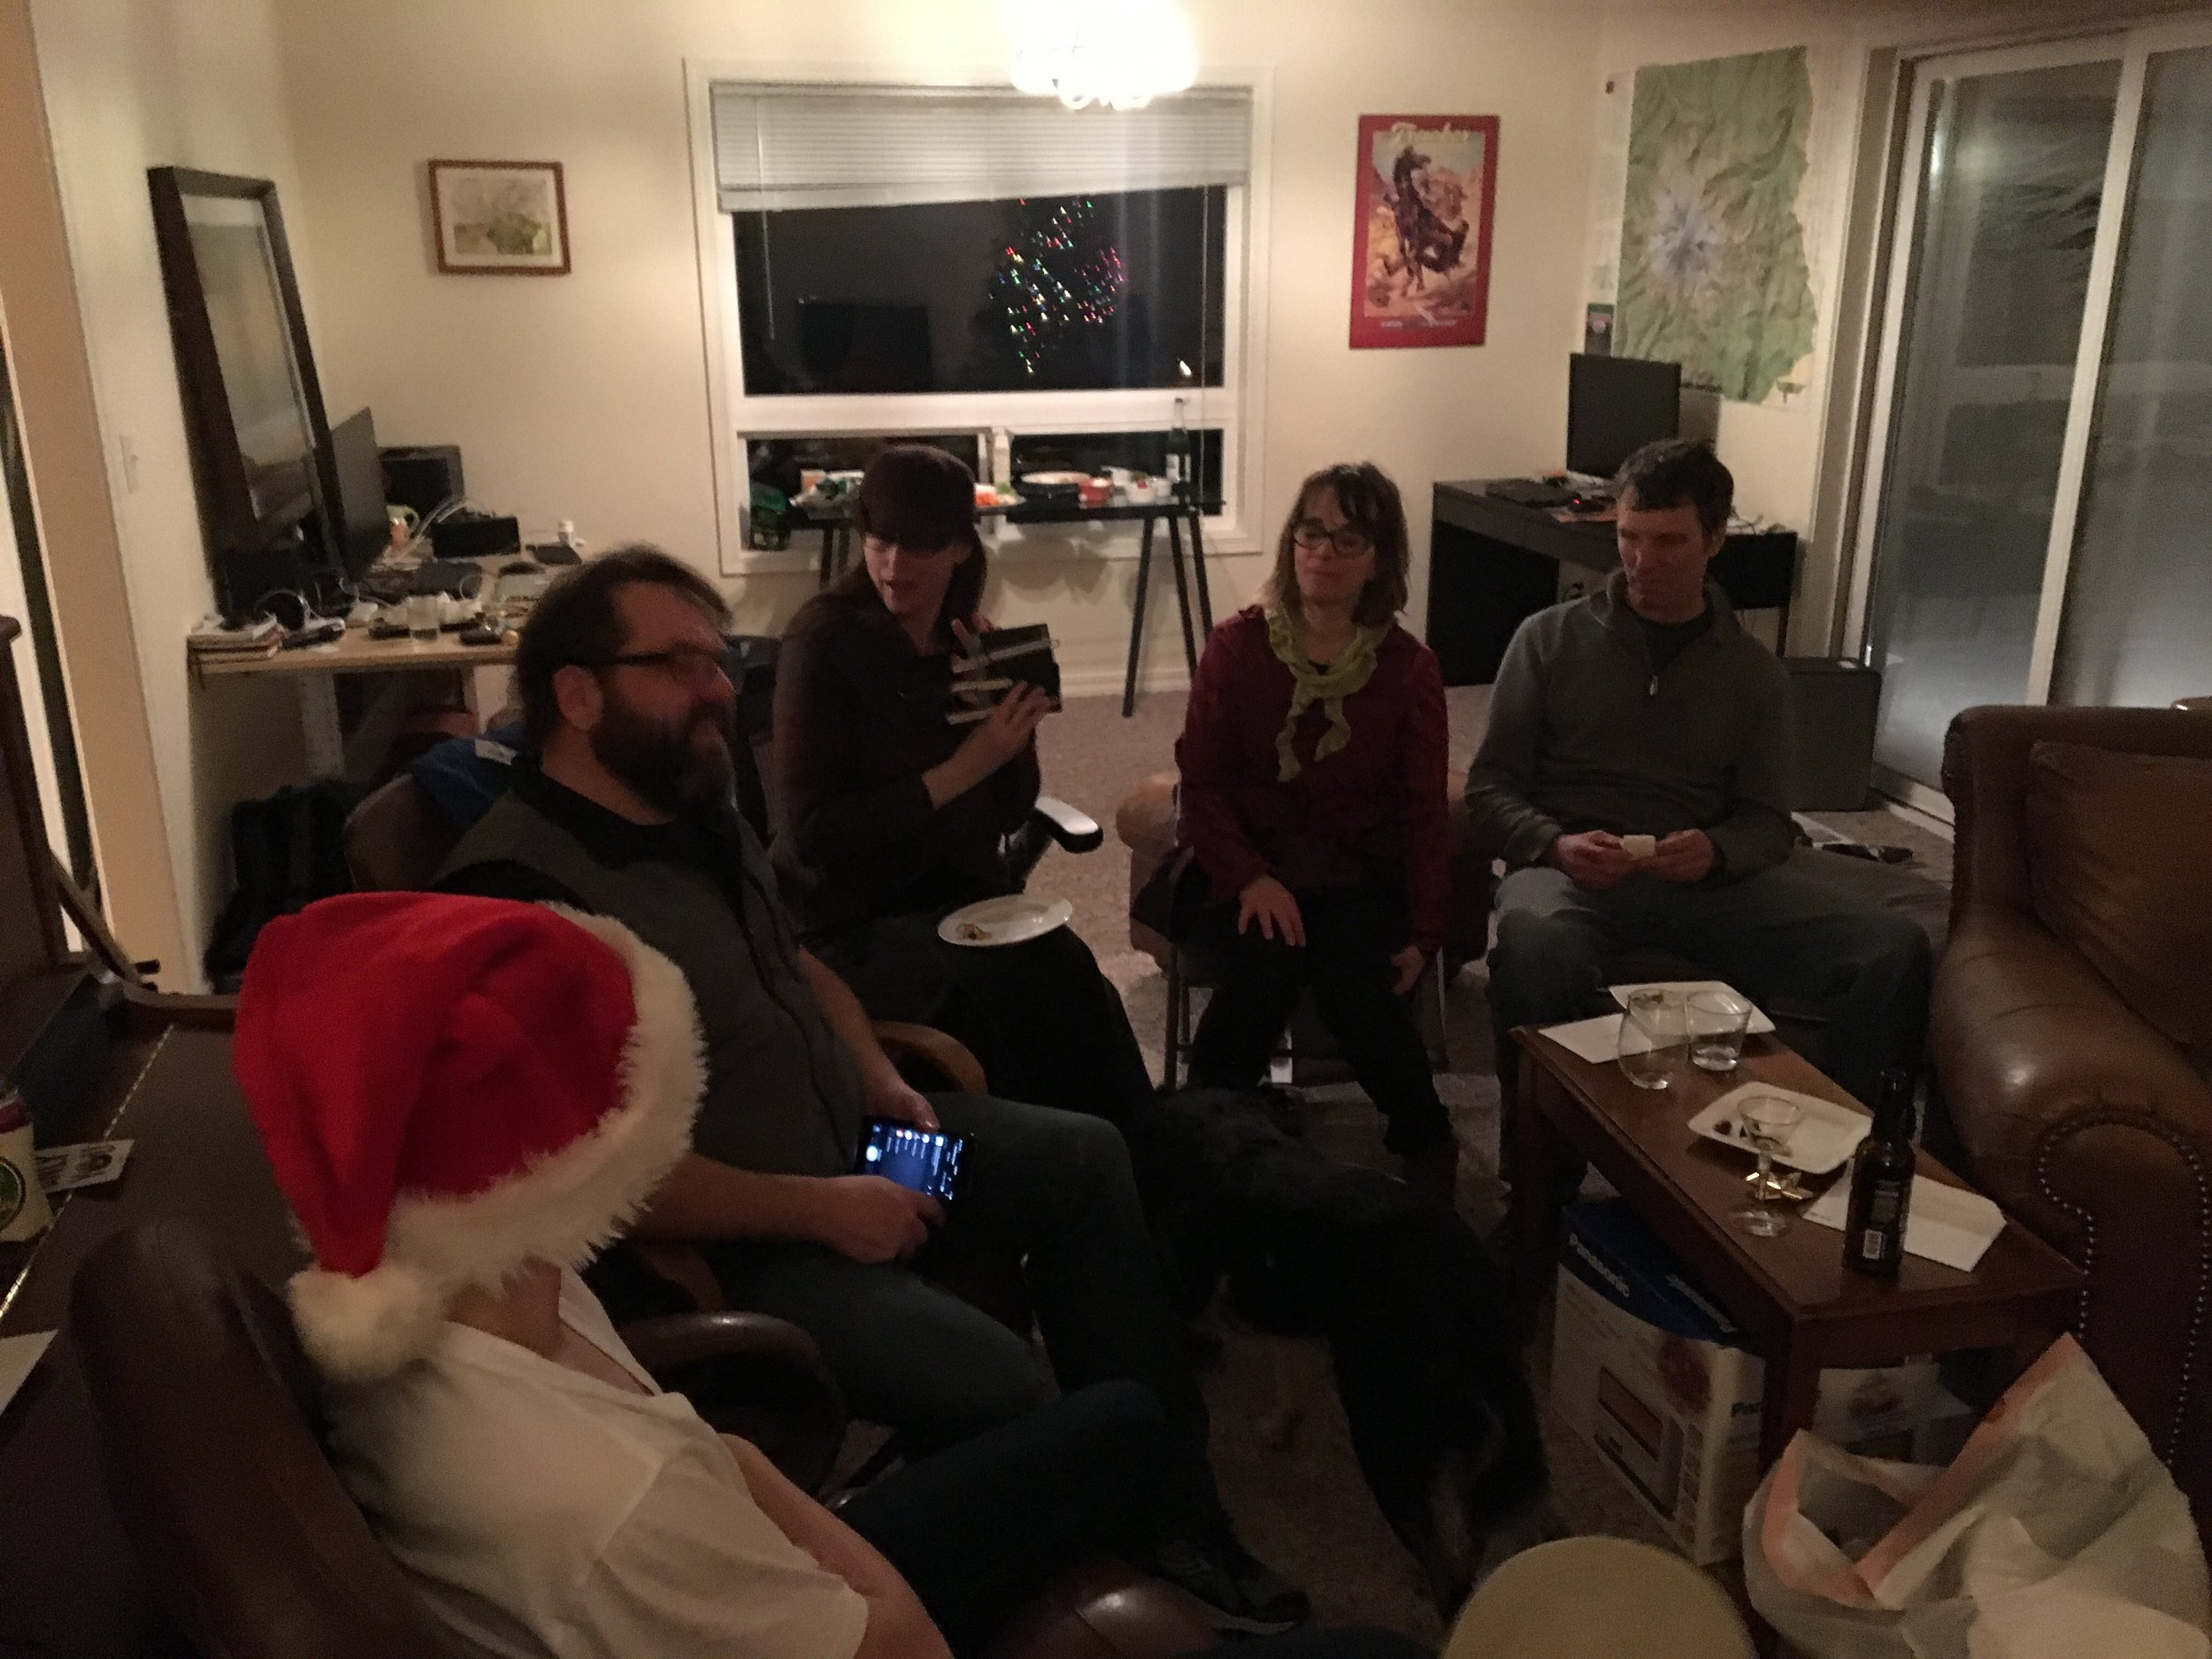 - Christmas Eve at Joel's.  Opening presents, from the left, Lucas (Joel's son), Joel, Tracie, Jenny, and Scott.